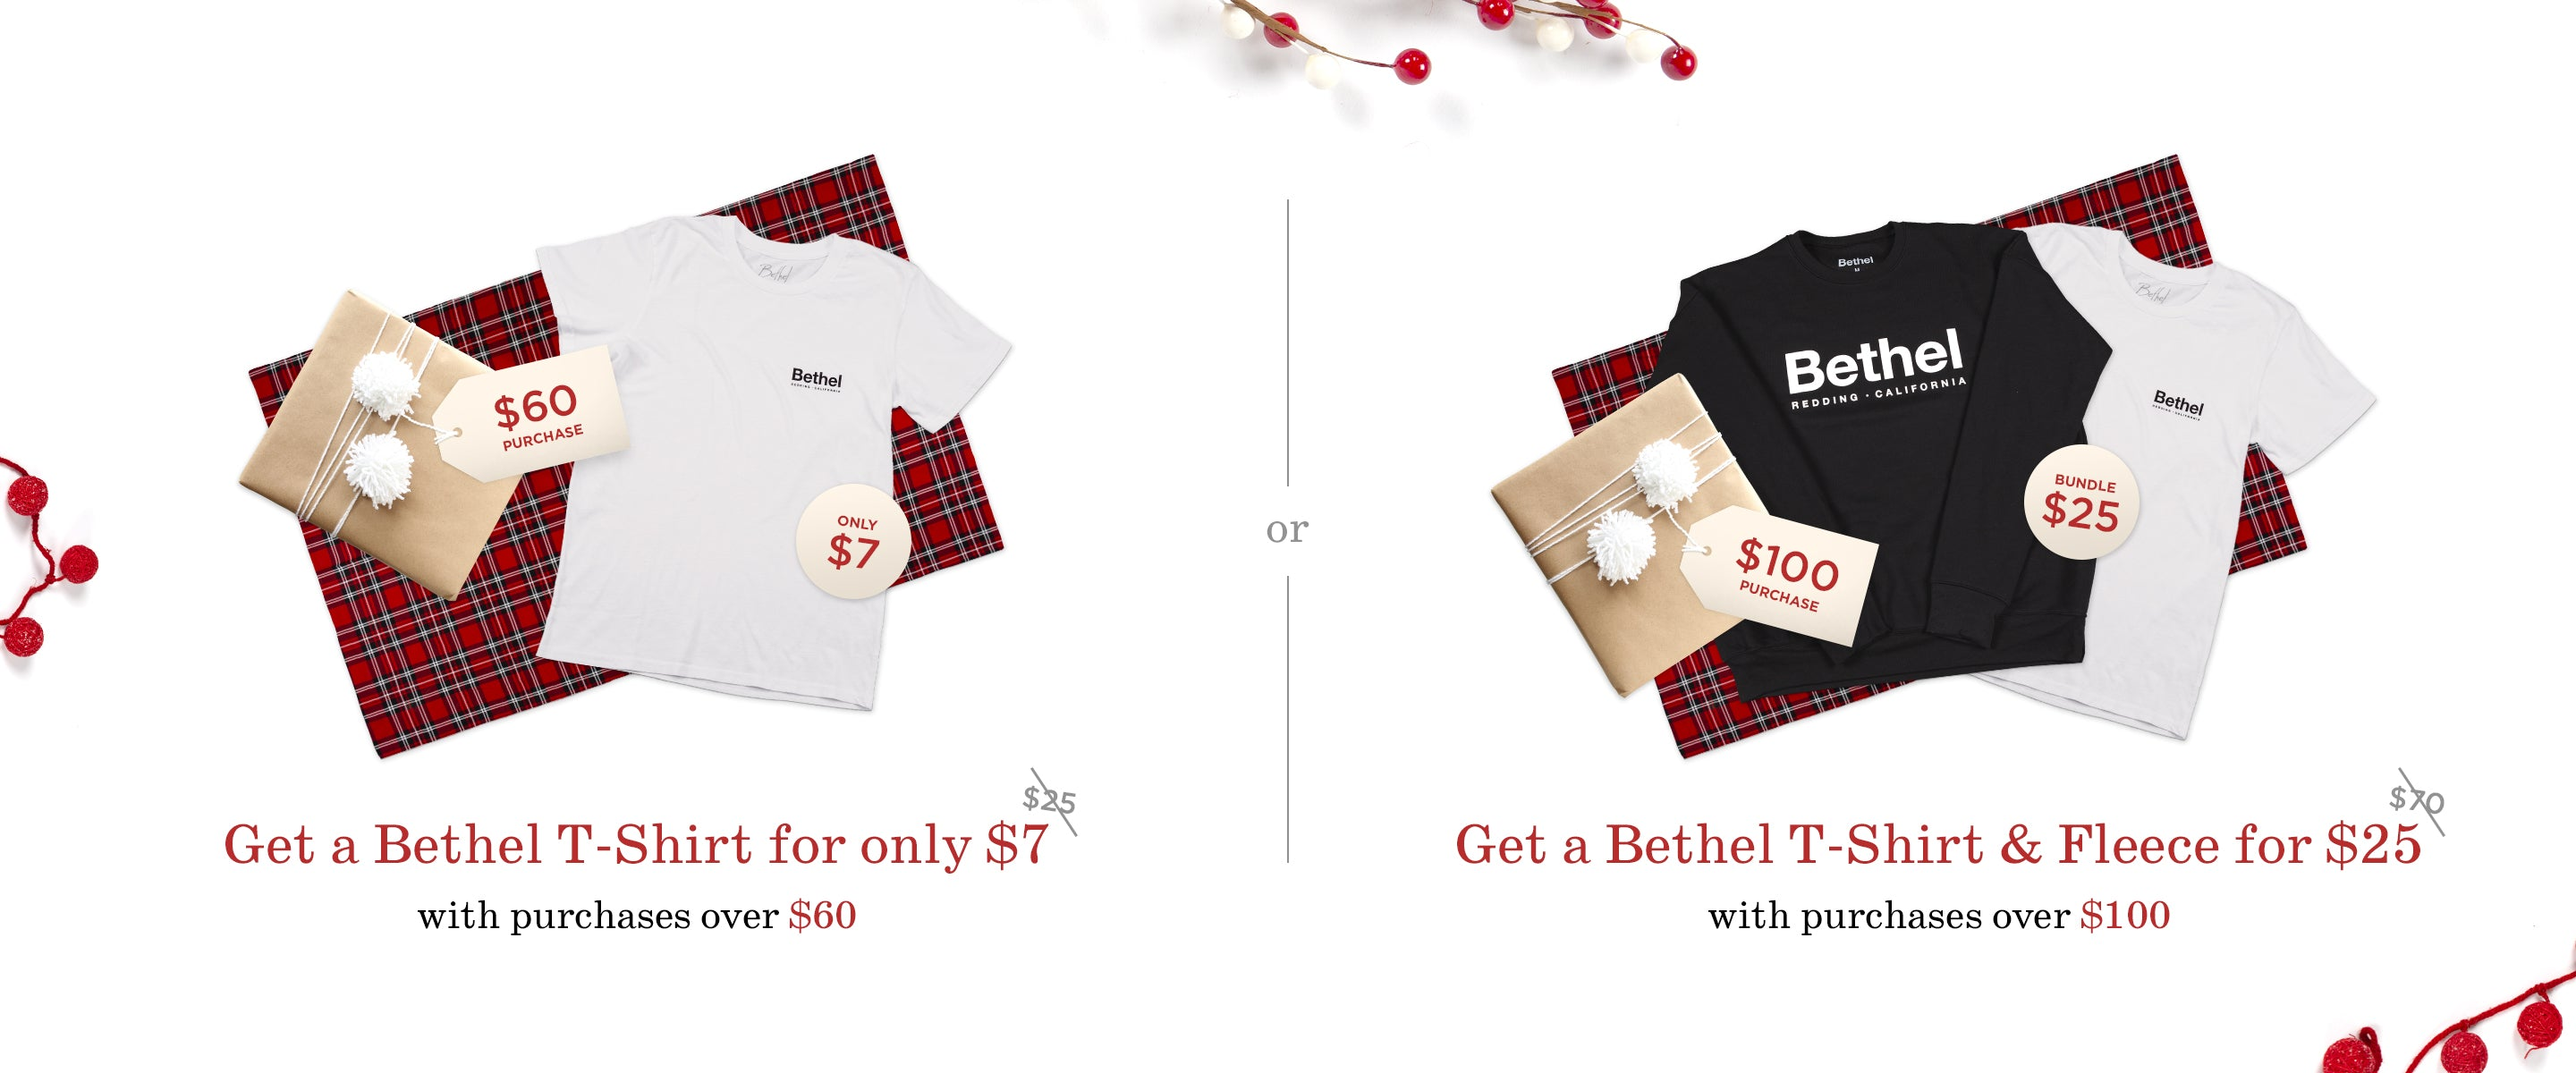 Bethel Bundle Deal